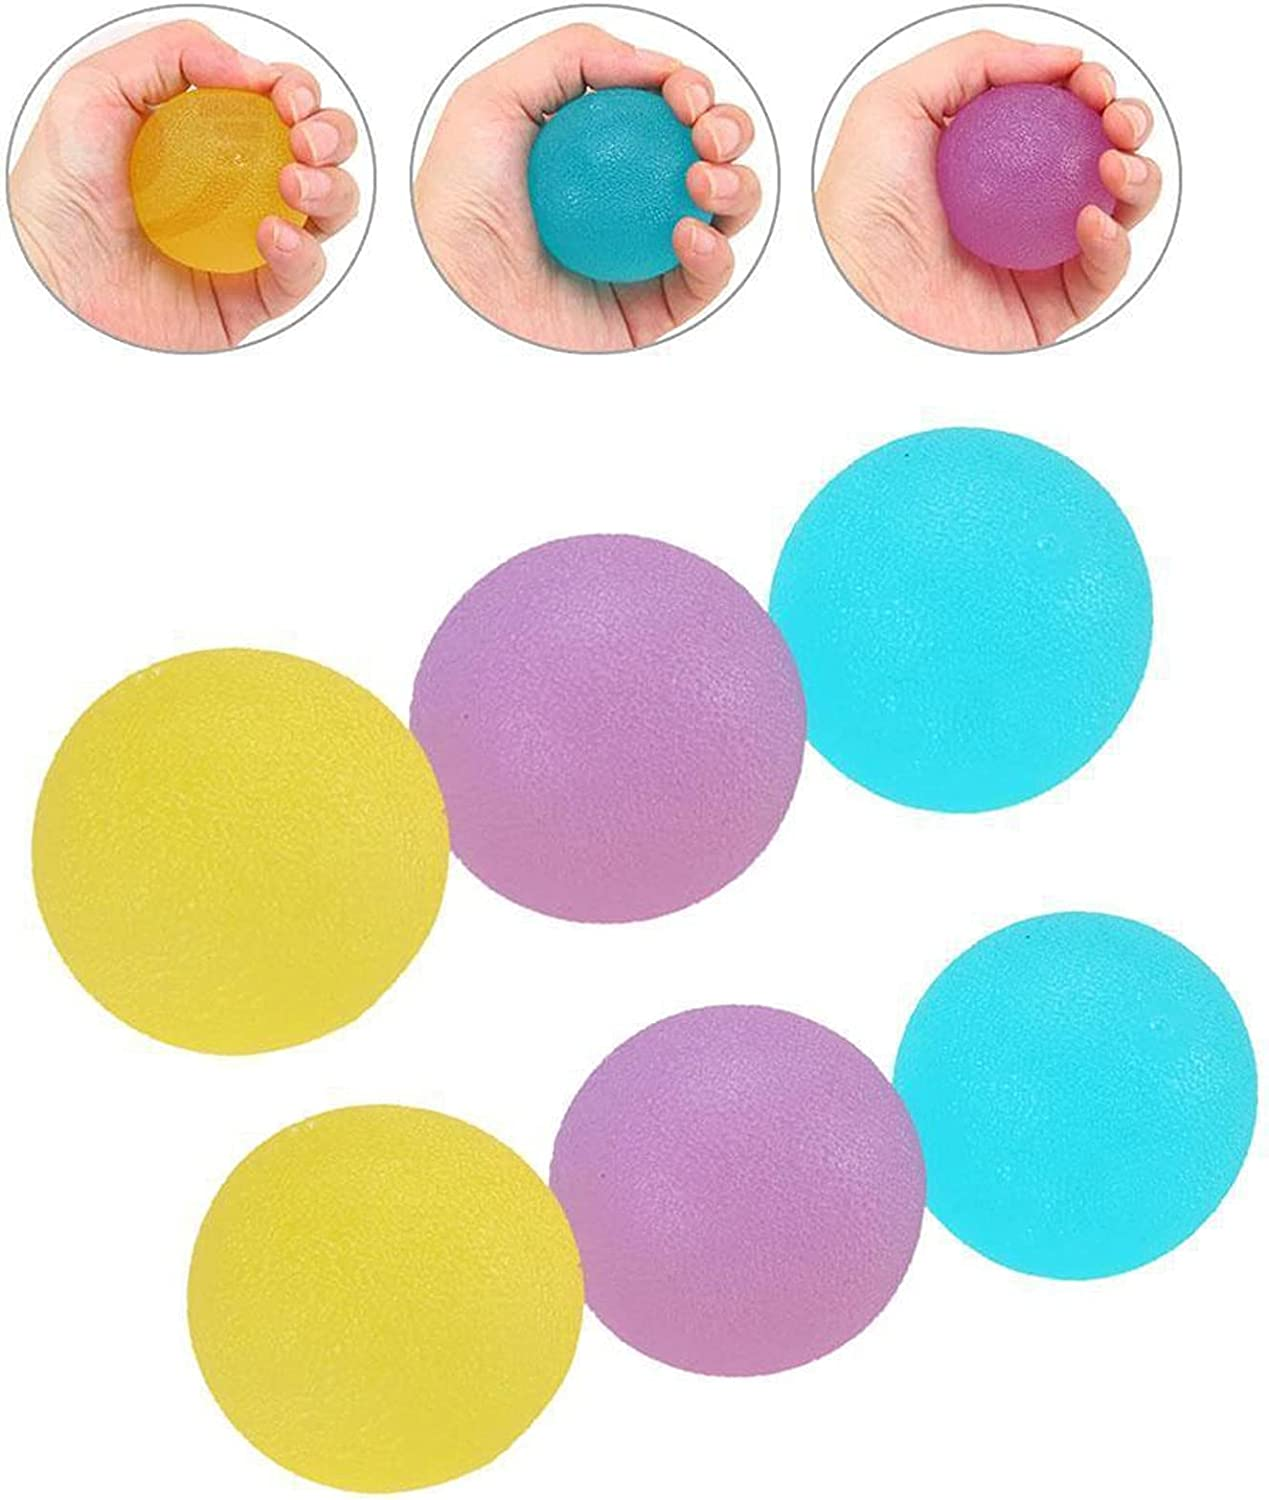 Reaction Training Sticky Popular brand in the world Ball Dodgeball Max 66% OFF Relief S Stress